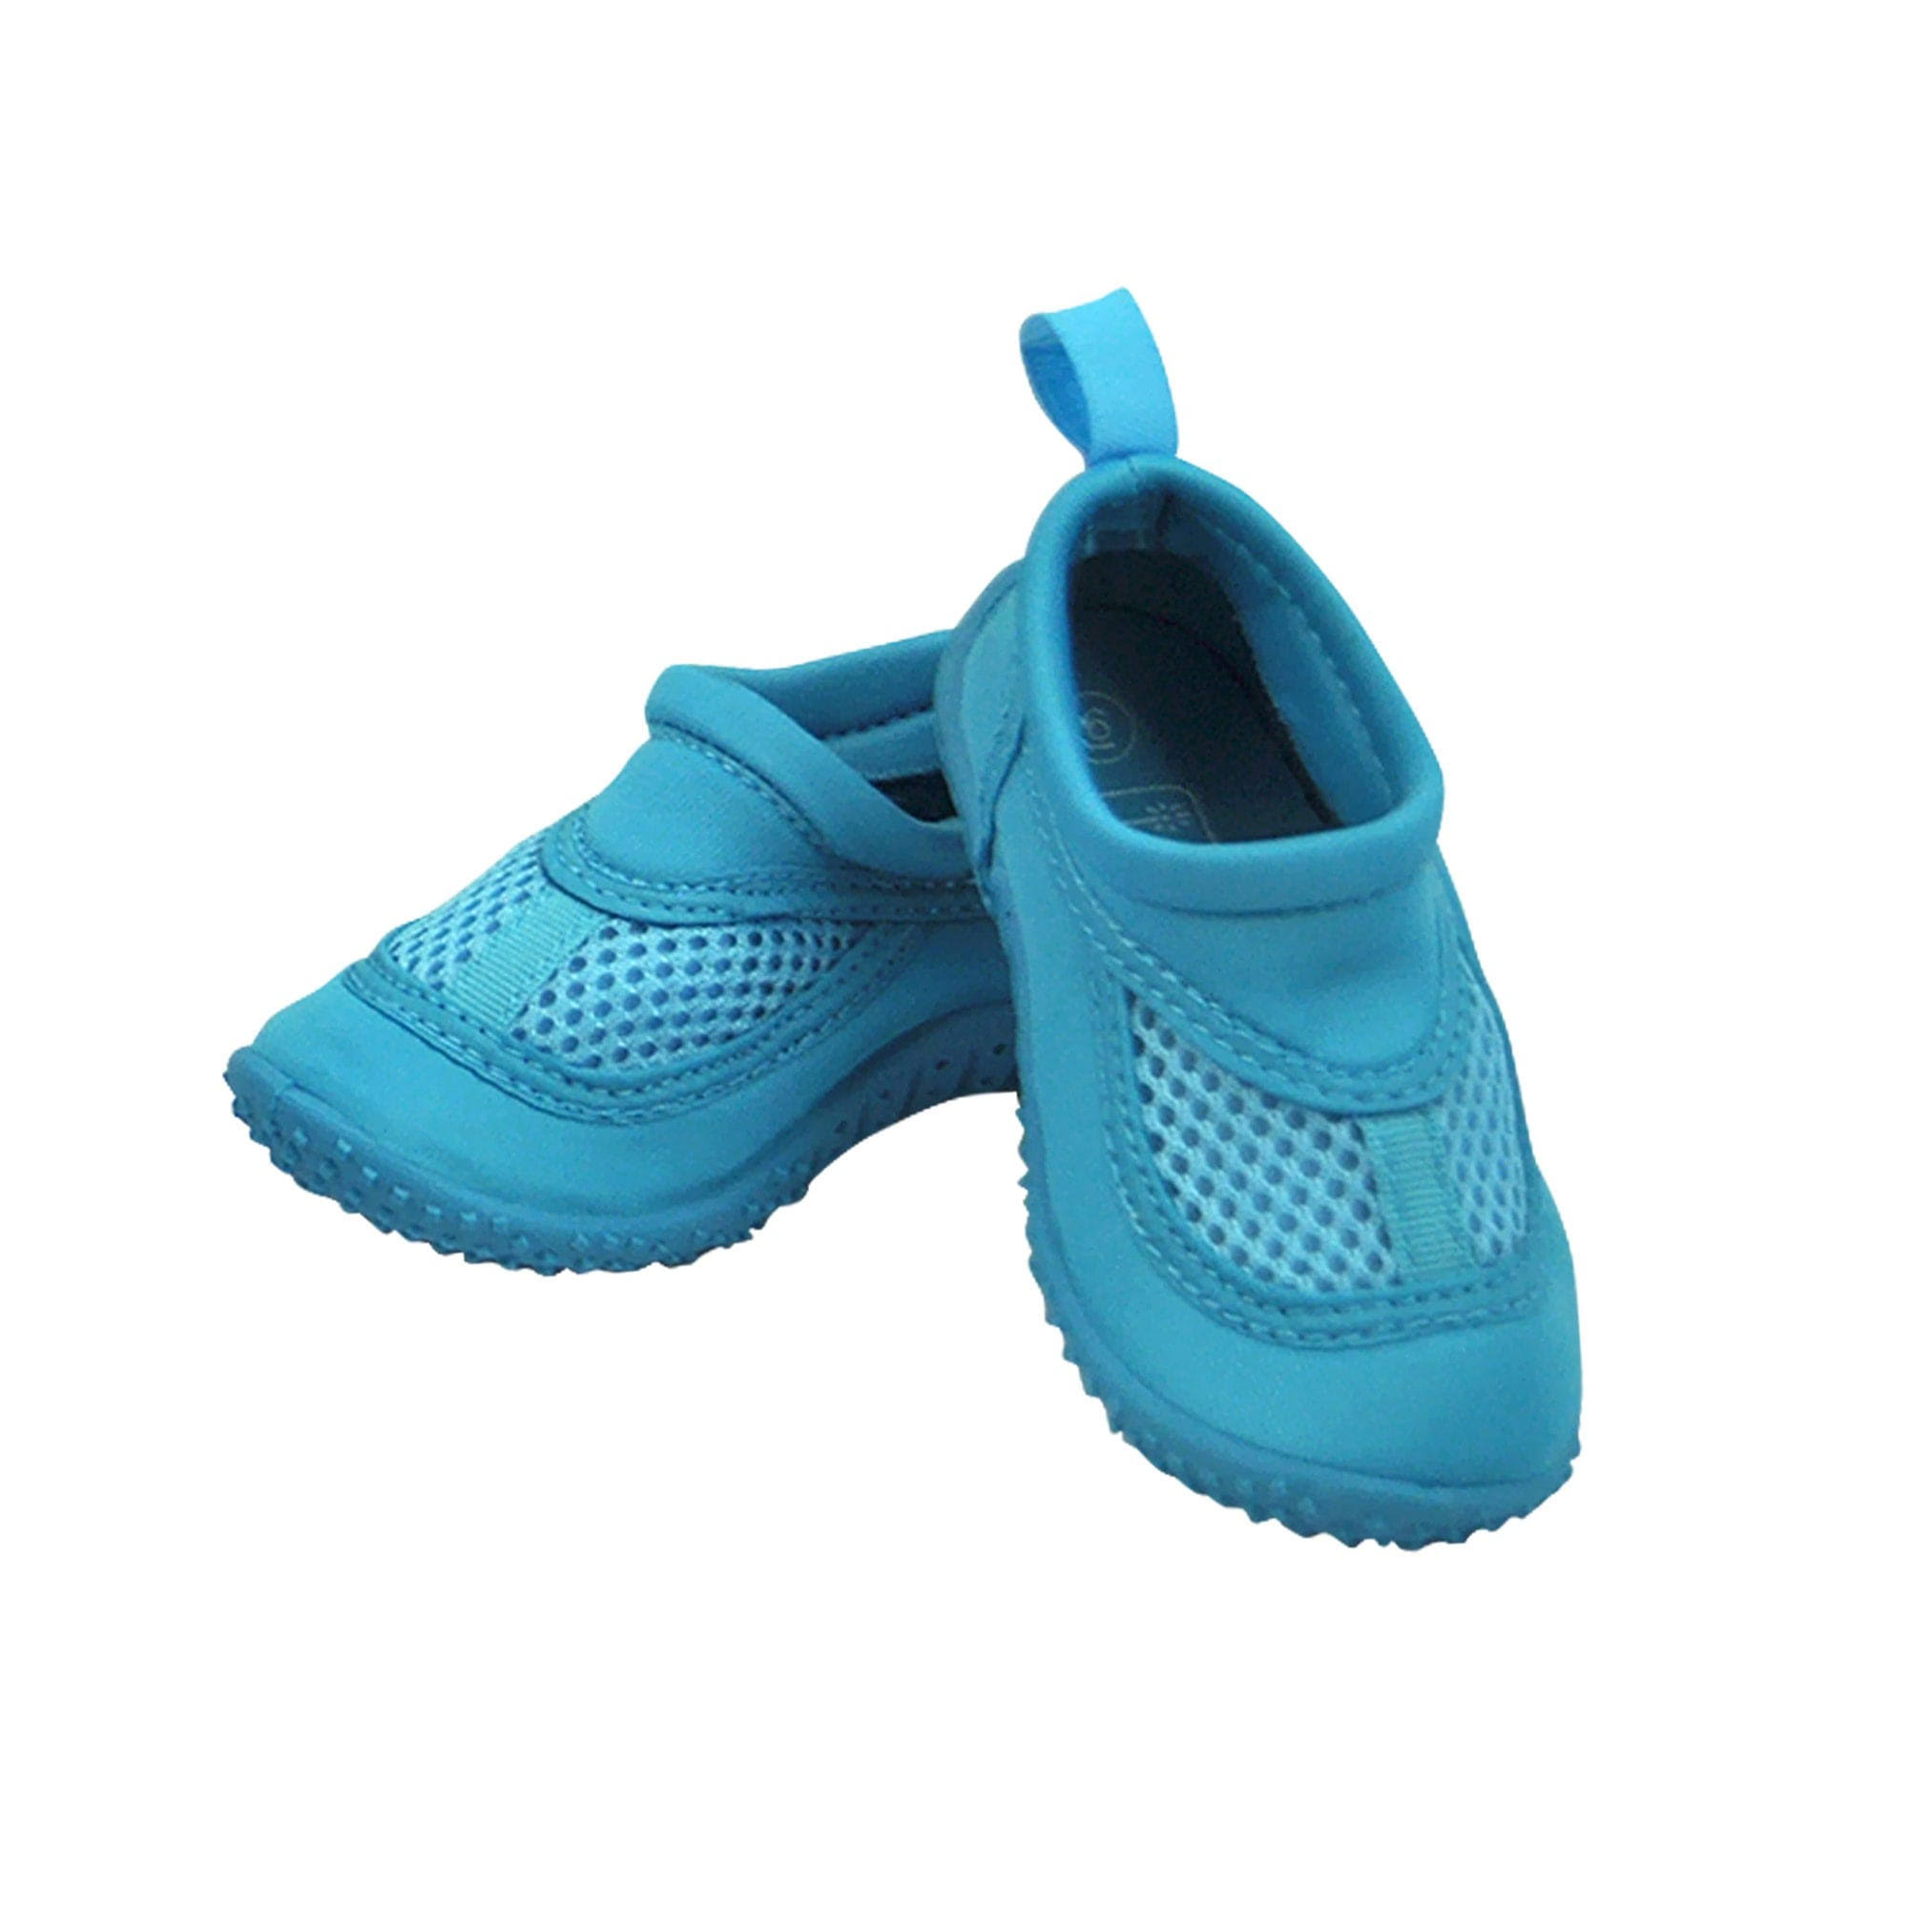 I Play Toddler's Baby Unisex Swim Shoes - Aqua, Size 9